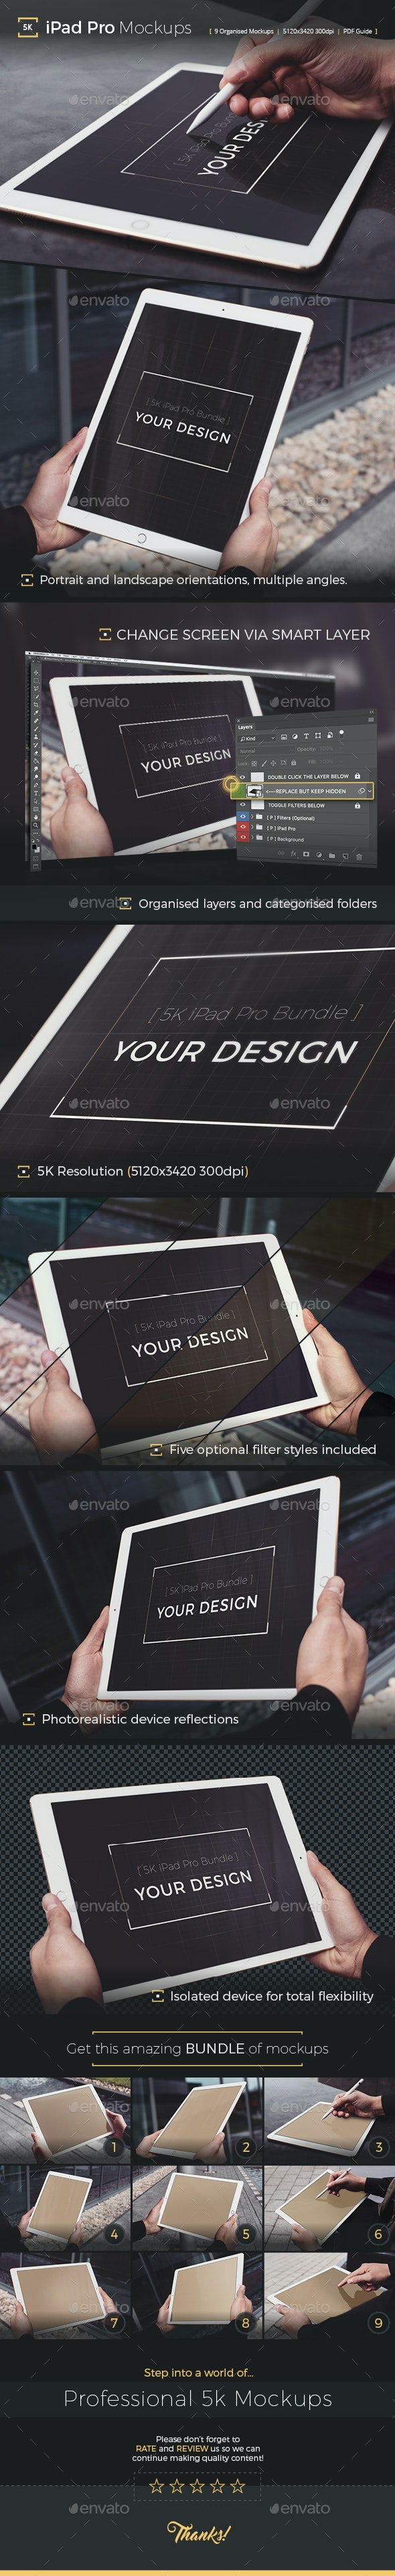 Pad Pro 5K Photorealistic Tablet Mockup - Mobile Displays